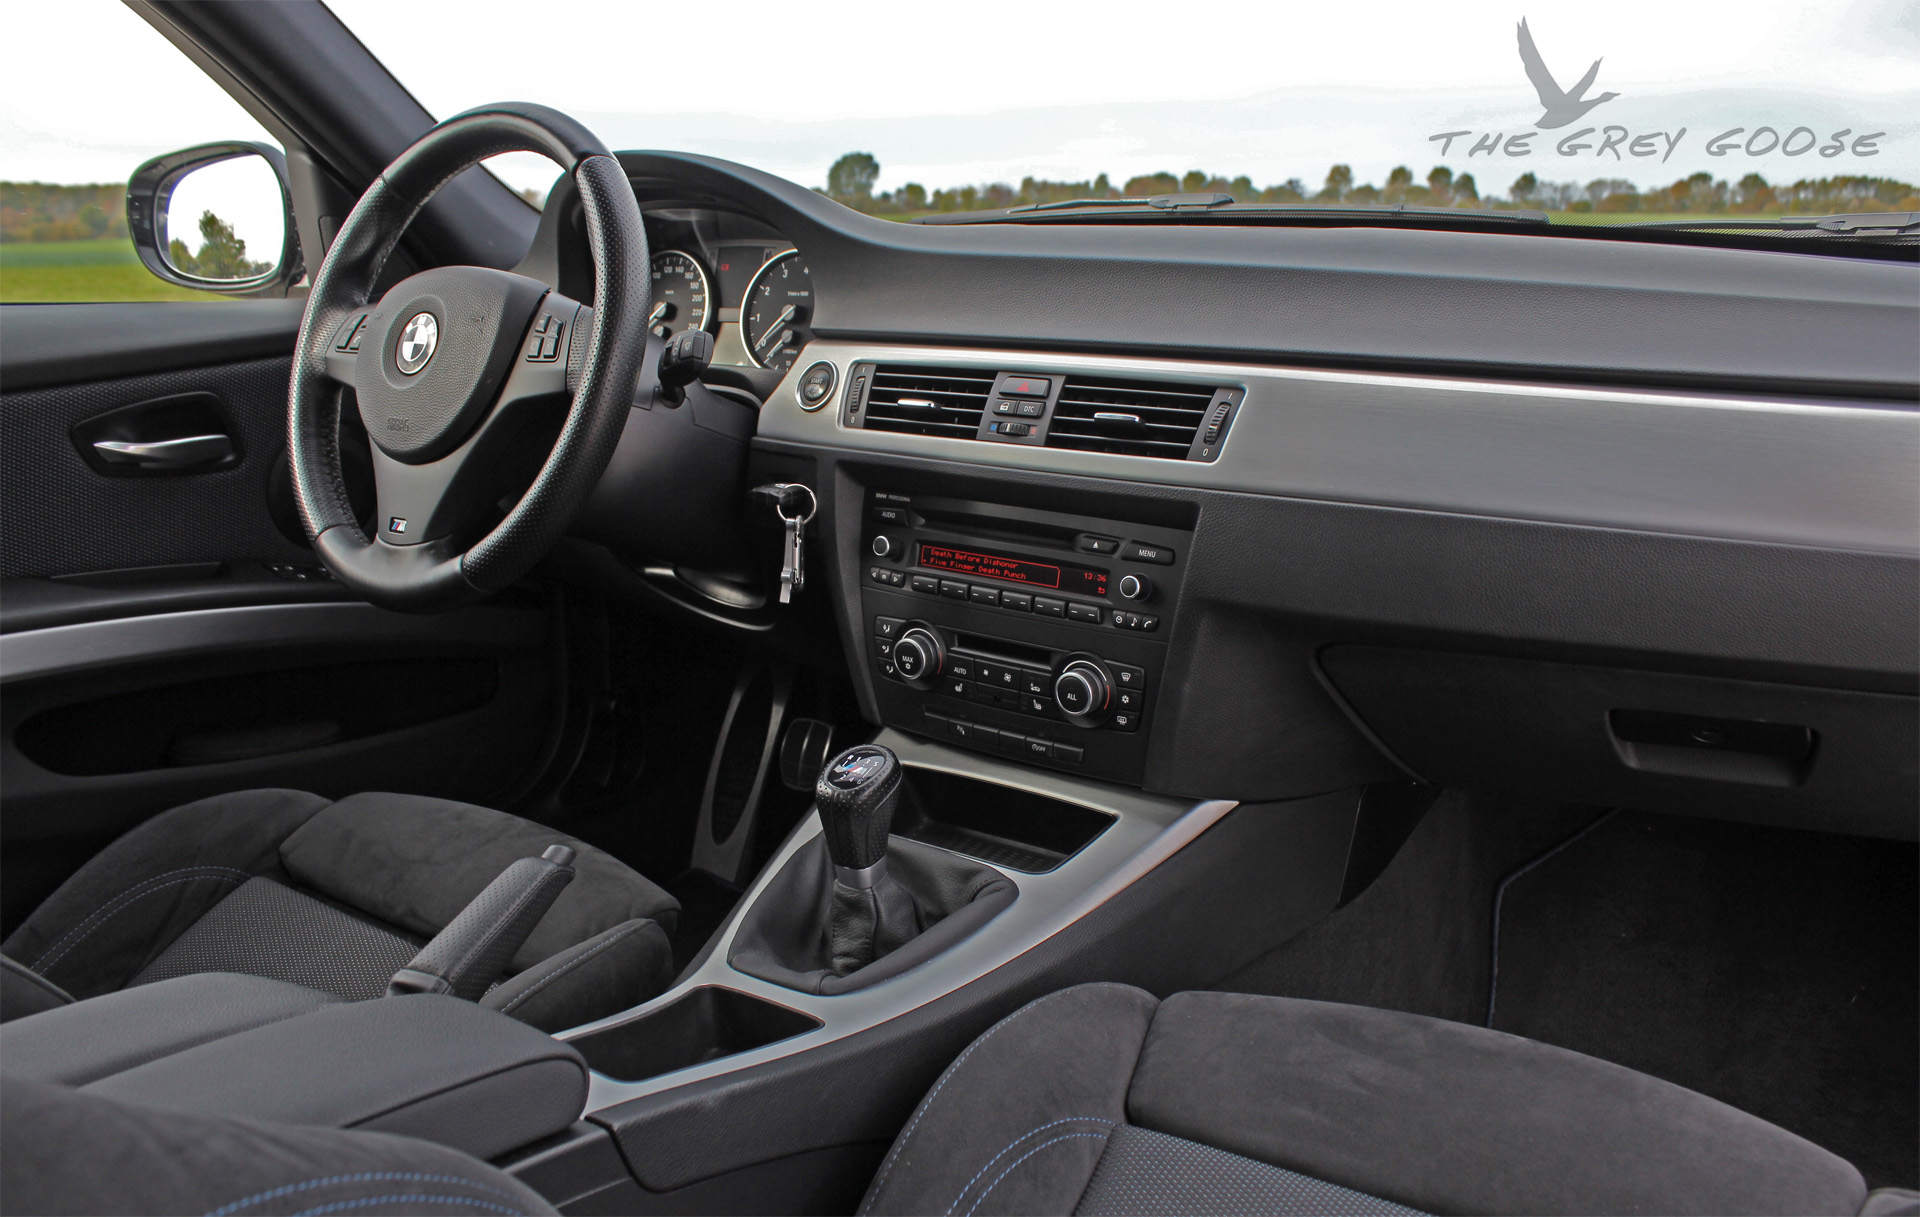 The Grey Goose E91 Lci 320i Spacegrau M Paket HD Wallpapers Download free images and photos [musssic.tk]